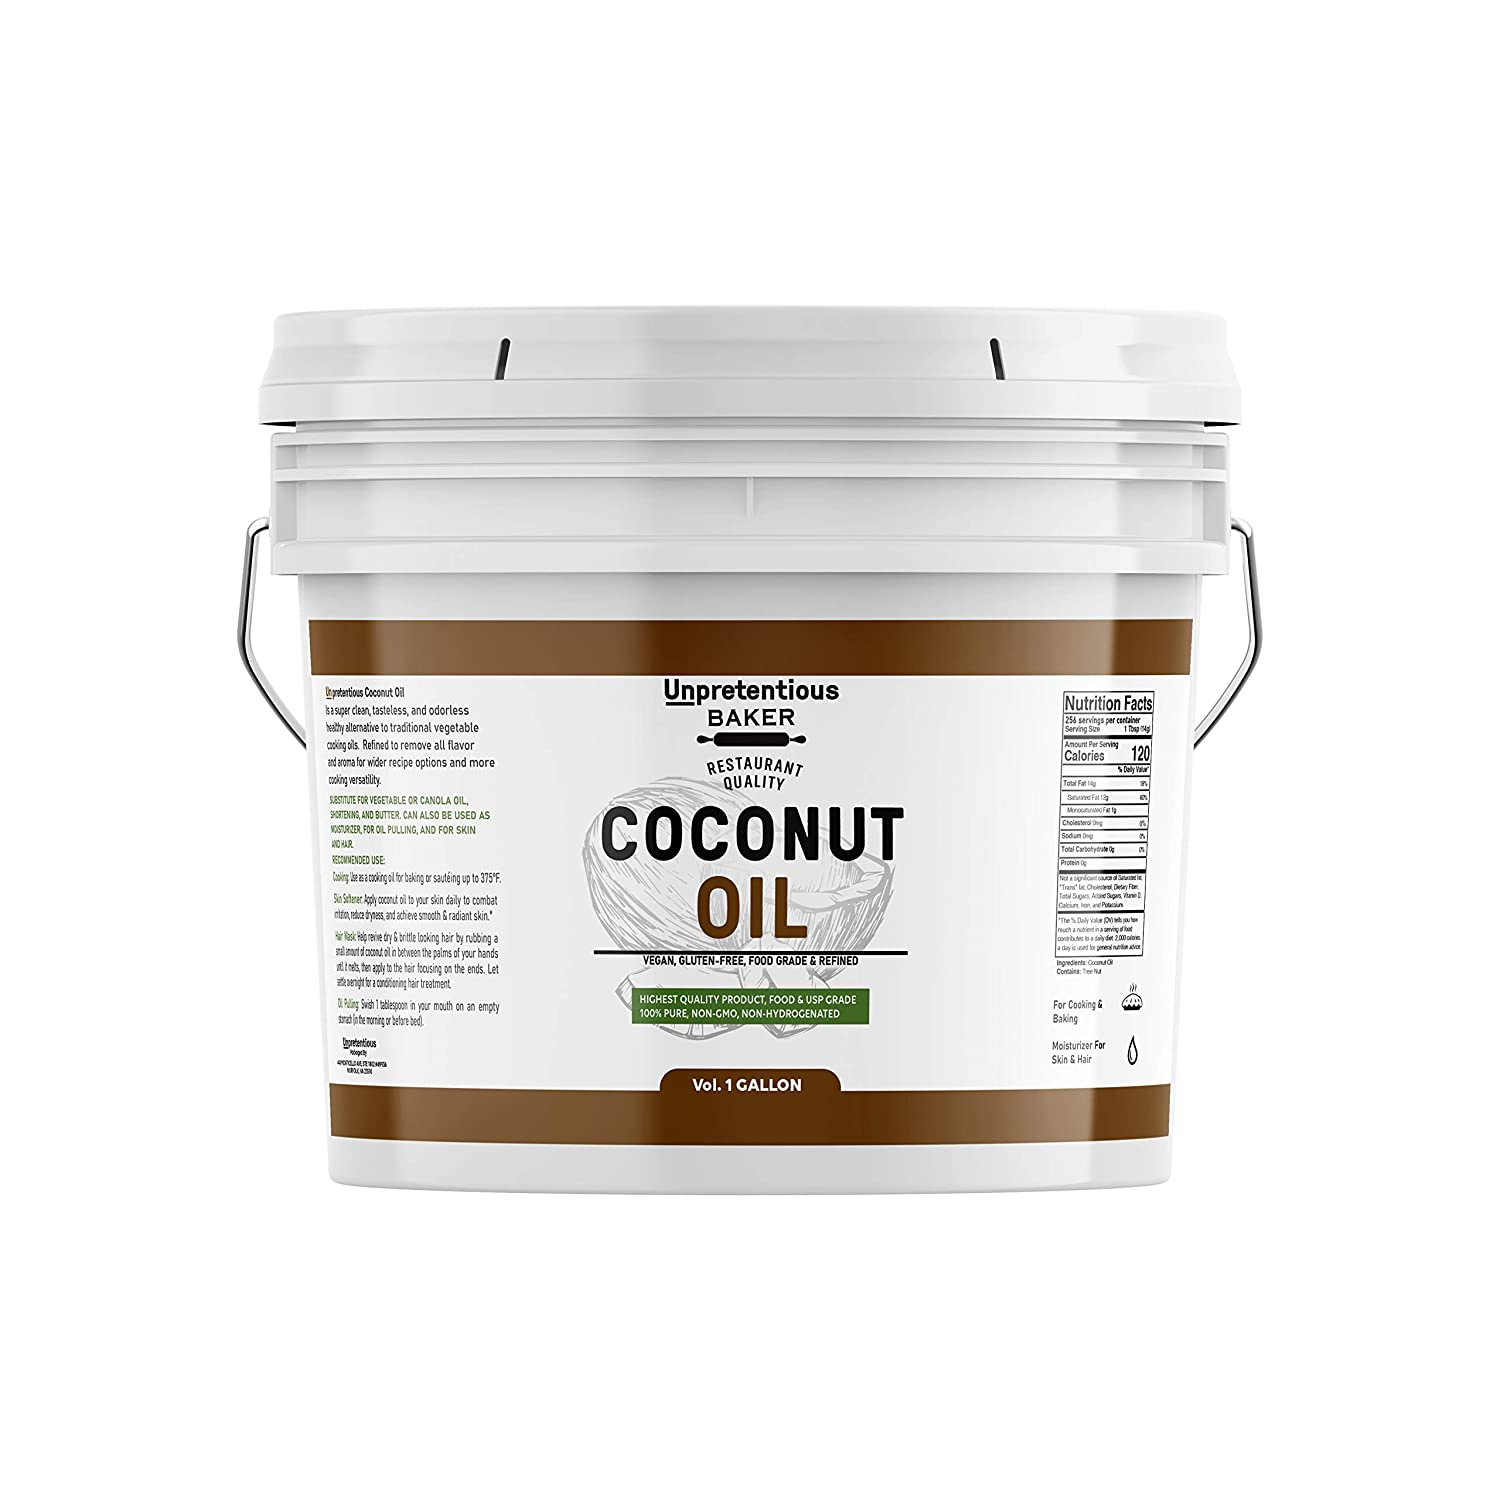 Coconut Oil (1 gallon) by Unpretentious Baker, Resealable Bucket, 100% Pure For Cooking, Hair, & Skin, Refined, Filtered, Food Grade, Non-Hydrogenated, Flavorless & Scentless, Non-GMO